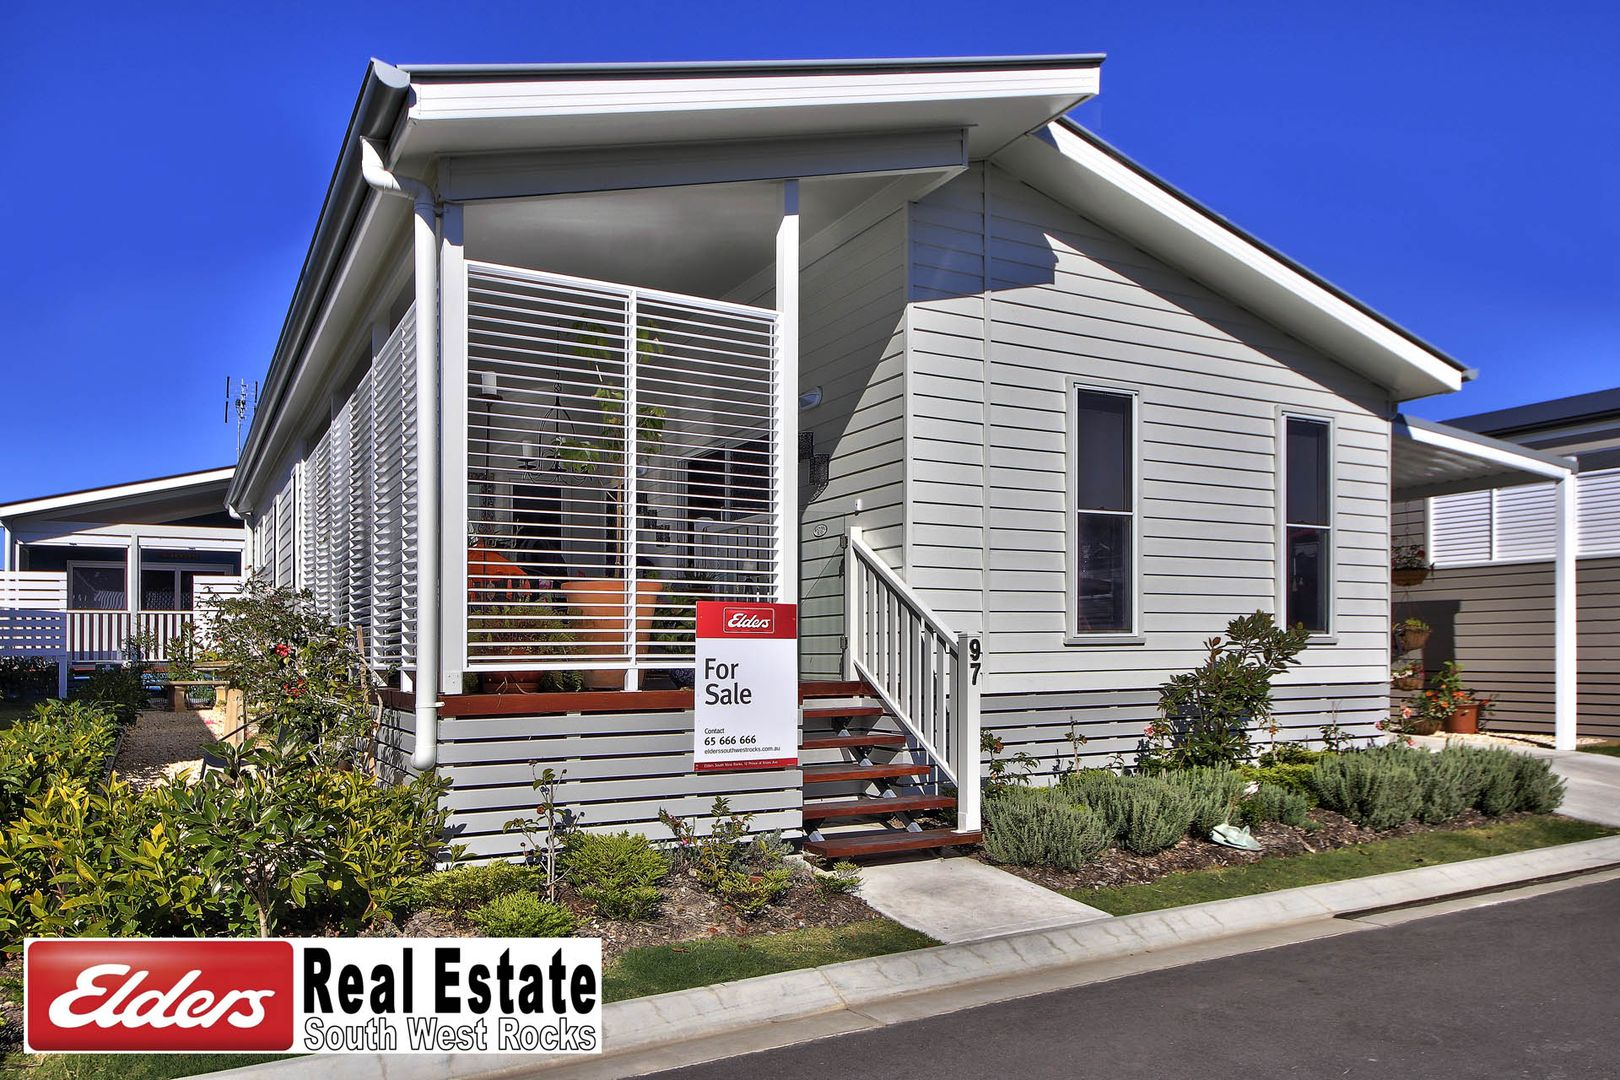 97/39-89 Gordon Young Dr, South West Rocks NSW 2431, Image 2